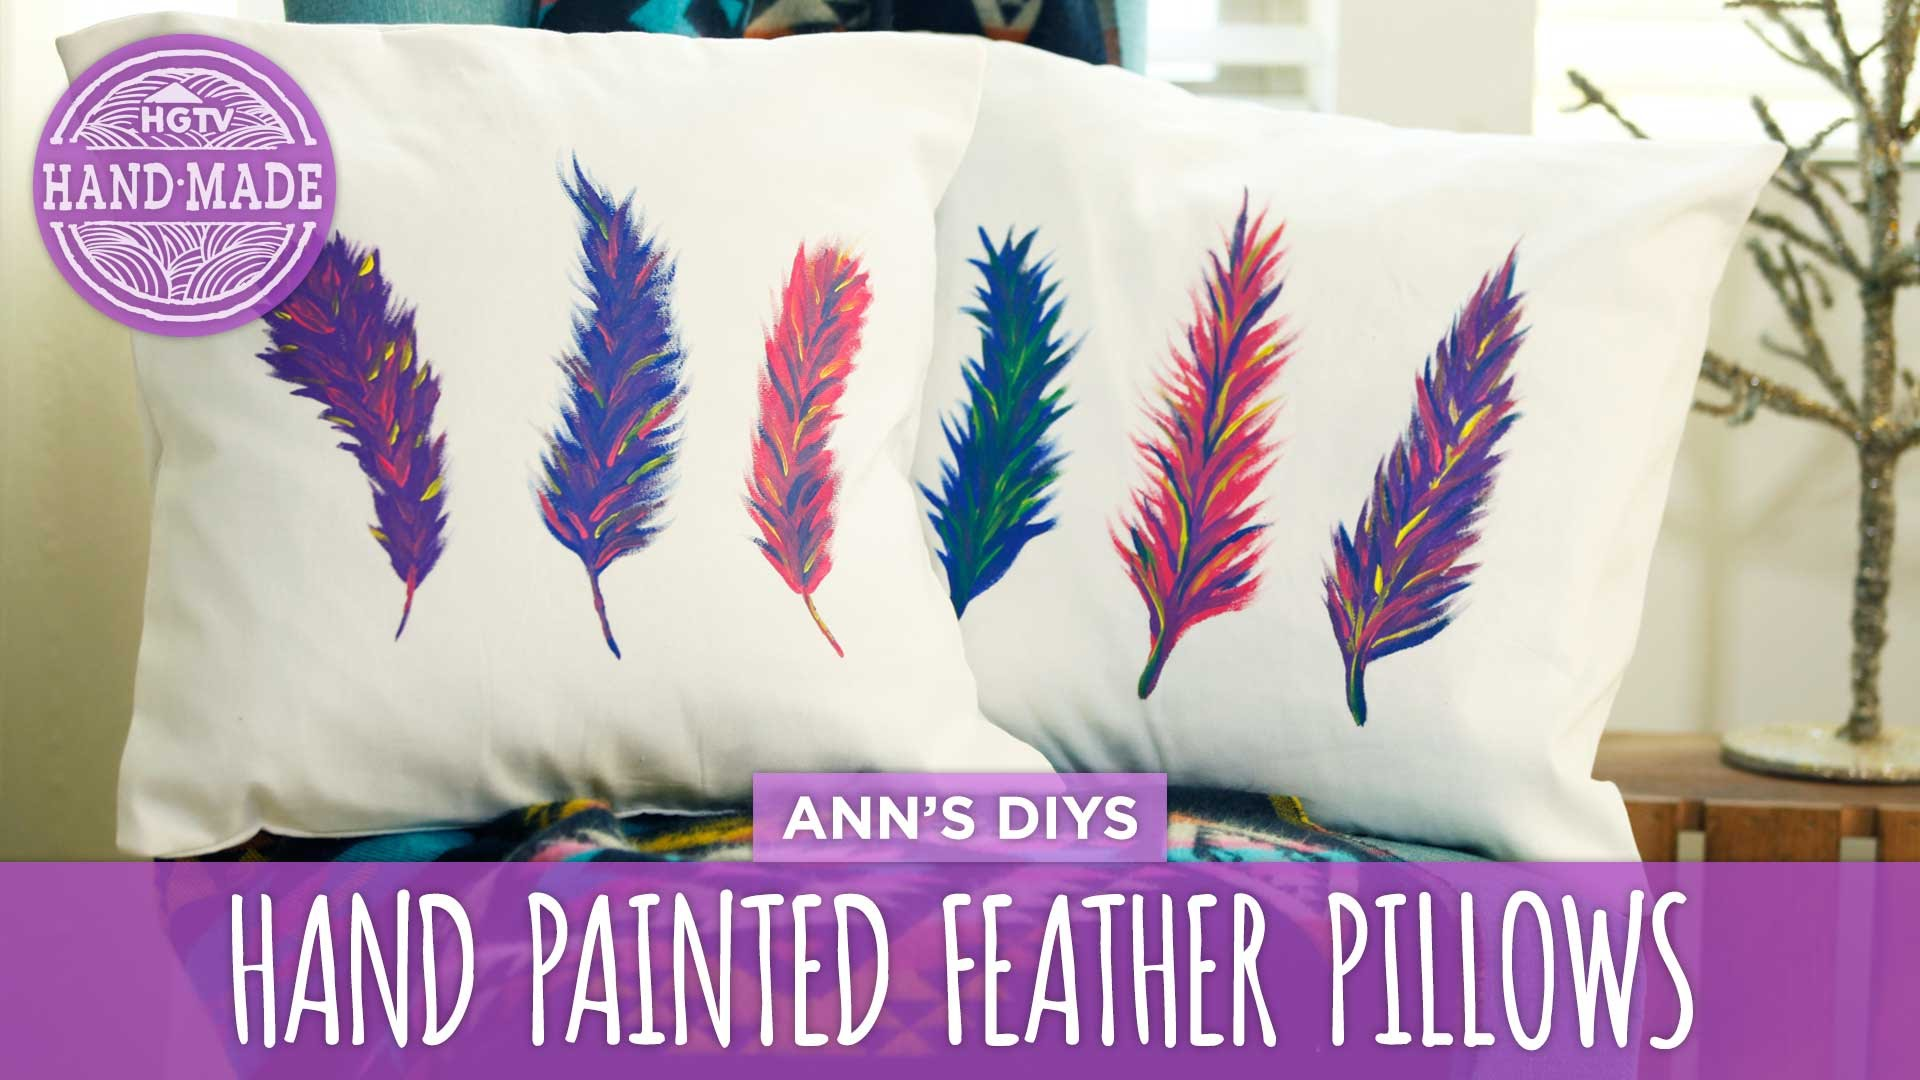 Hand painted feather pillows